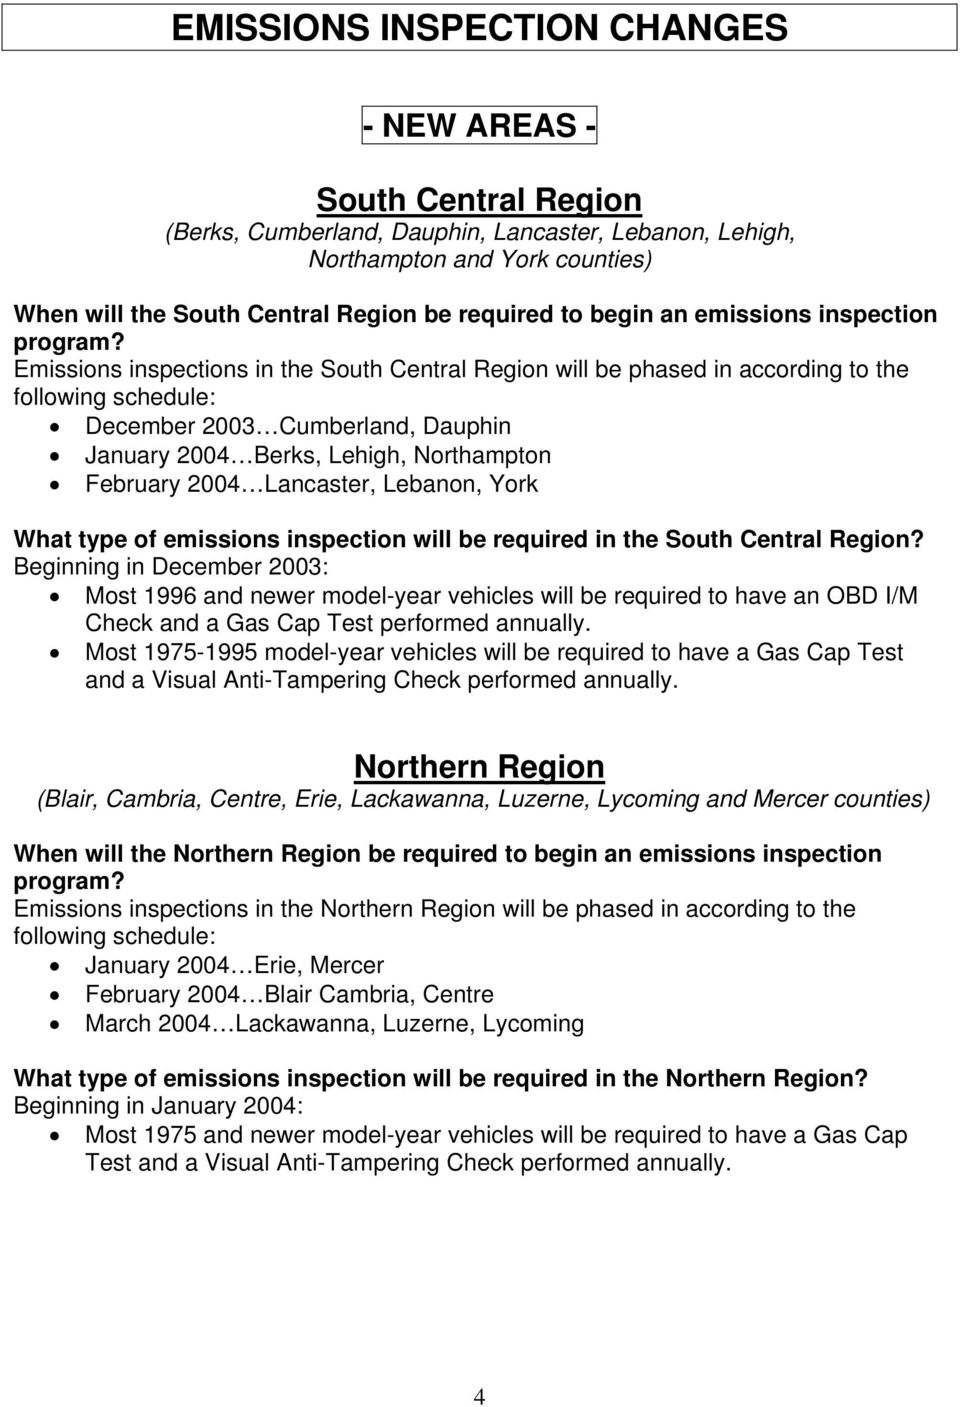 Emissions inspections in the South Central Region will be phased in according to the following schedule: December 2003 Cumberland, Dauphin January 2004 Berks, Lehigh, Northampton February 2004